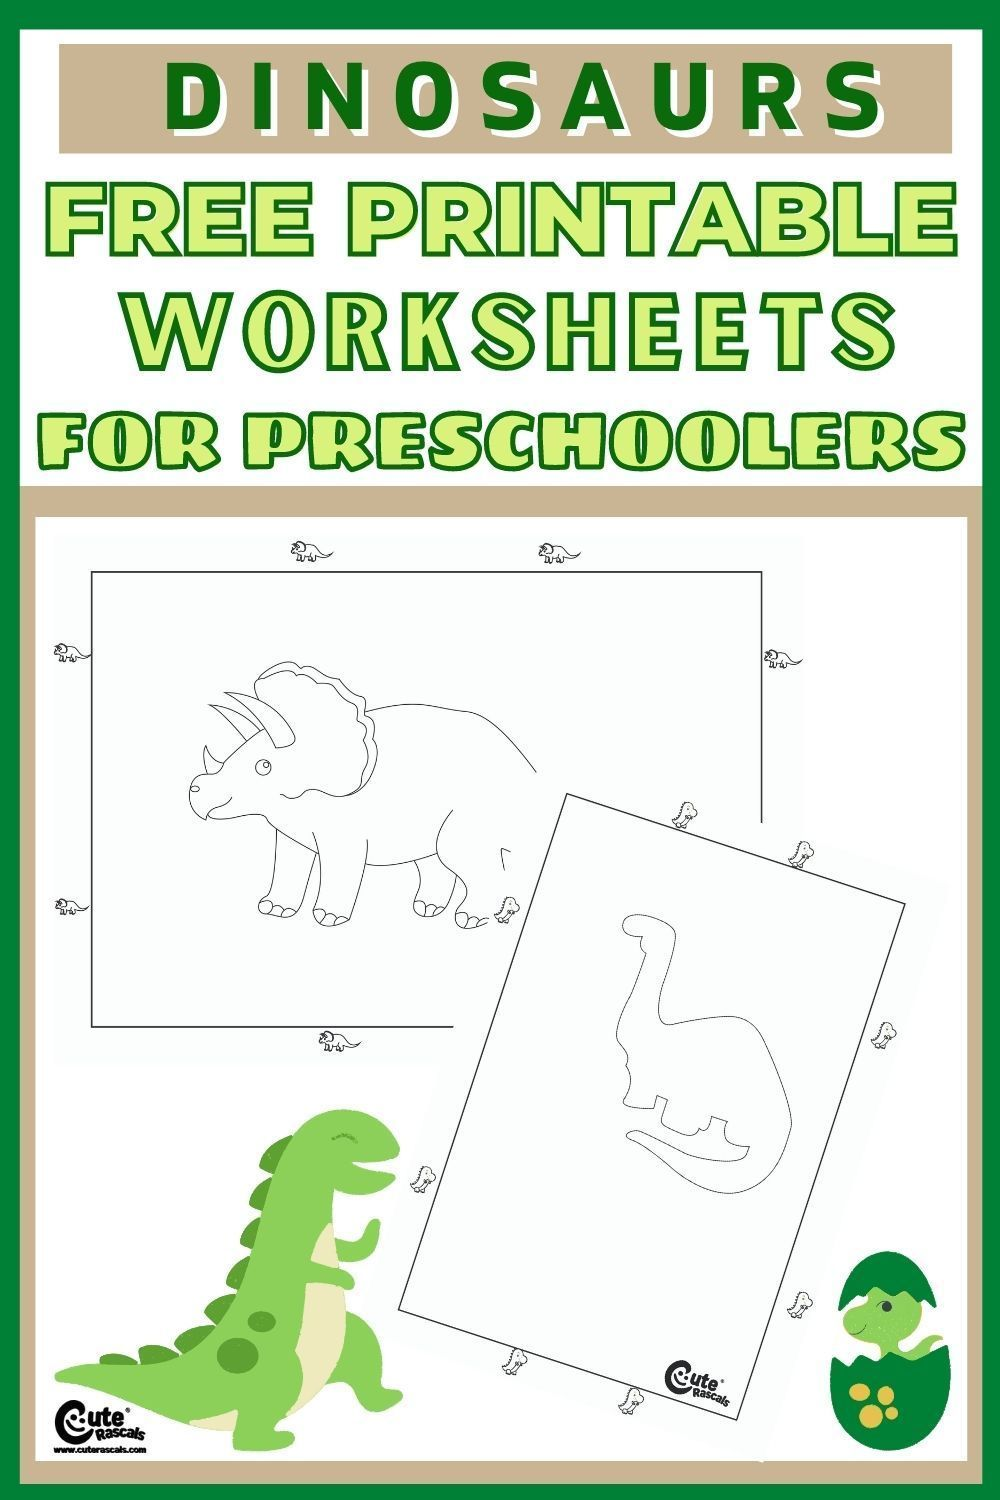 Quick Green As A Dinosaur Craft For Toddlers Sensorial Activity For Kids To Explore And Have Fun With Printable Worksheets 1 2 Year Olds In 2021 Kids Learning Activities Dinosaur Crafts Activities For Boys [ 1500 x 1000 Pixel ]